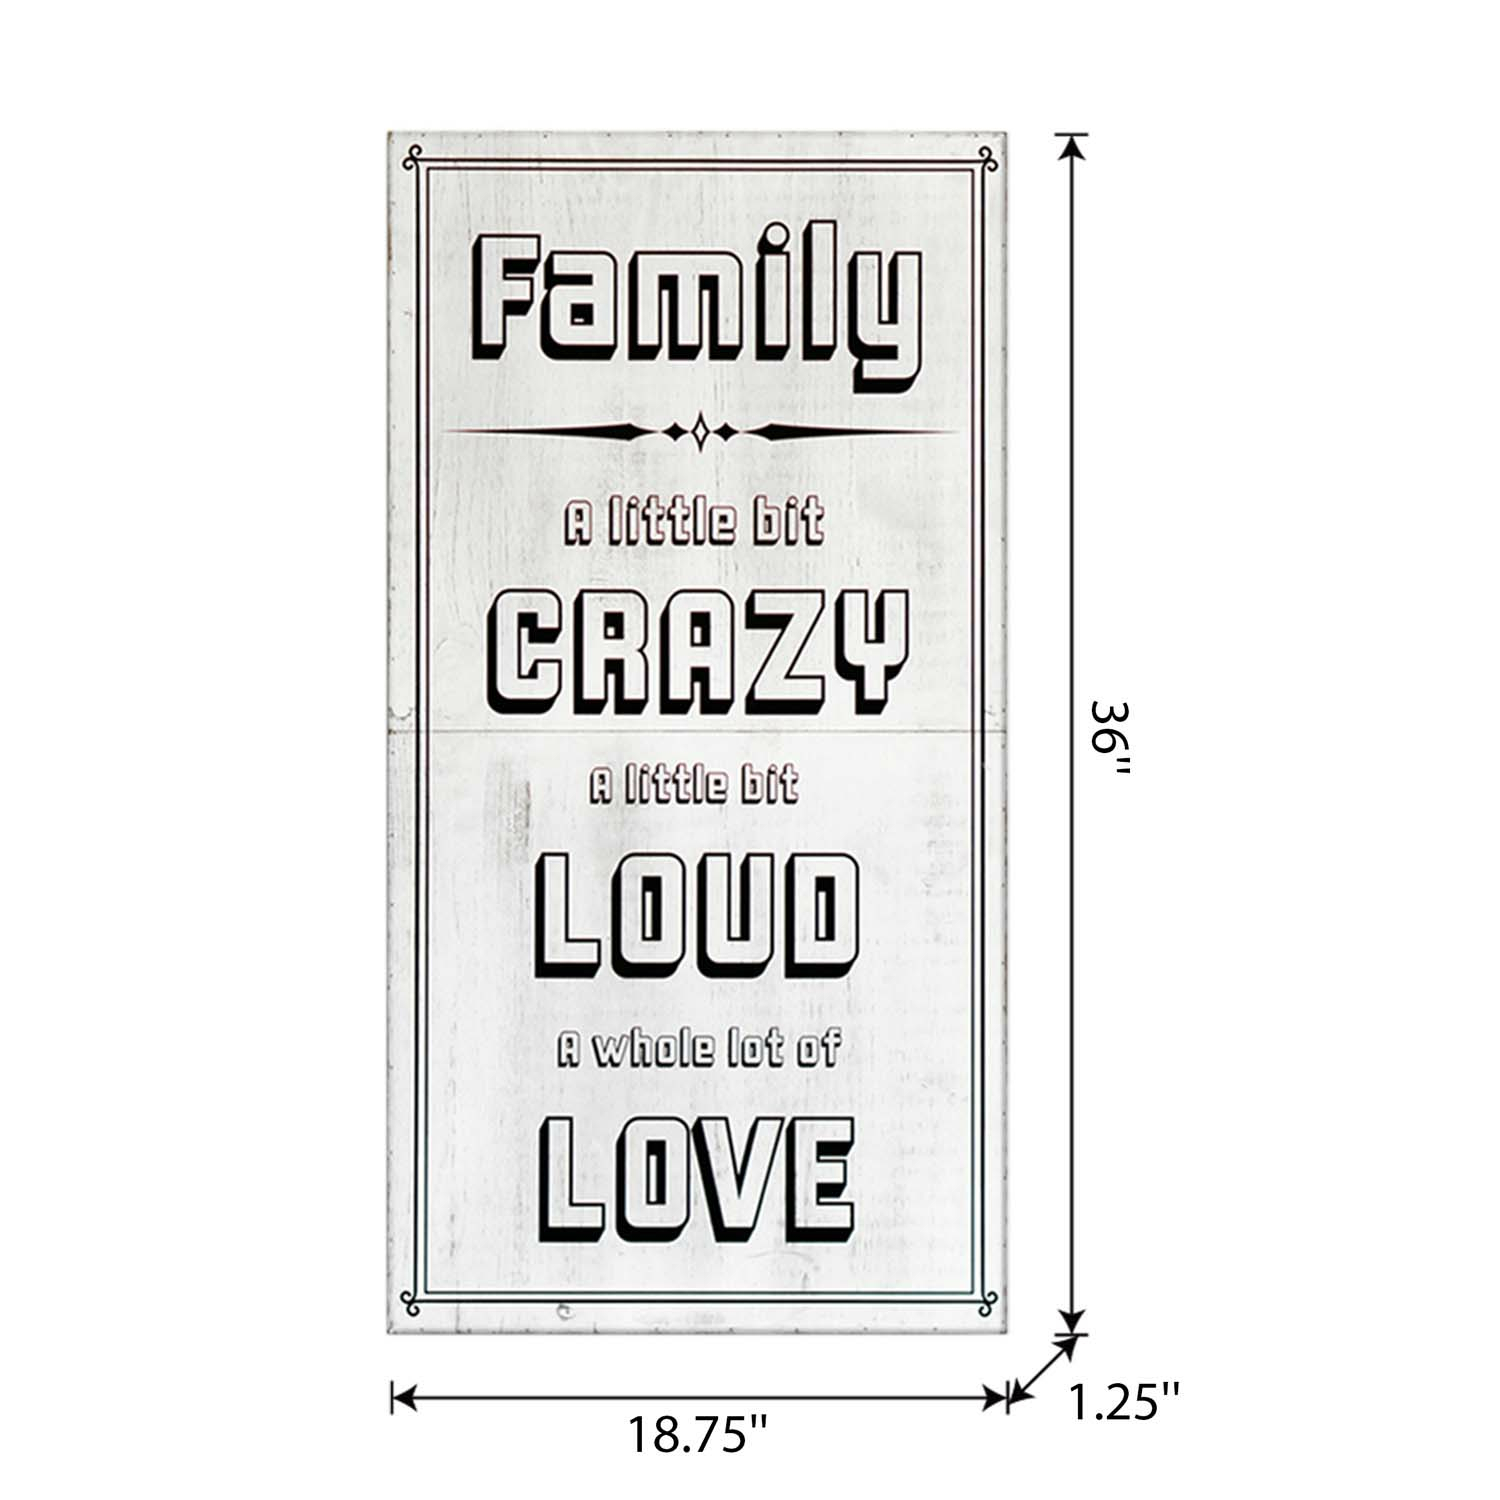 Craft Wood Easel Board 36In White Family-Crazy